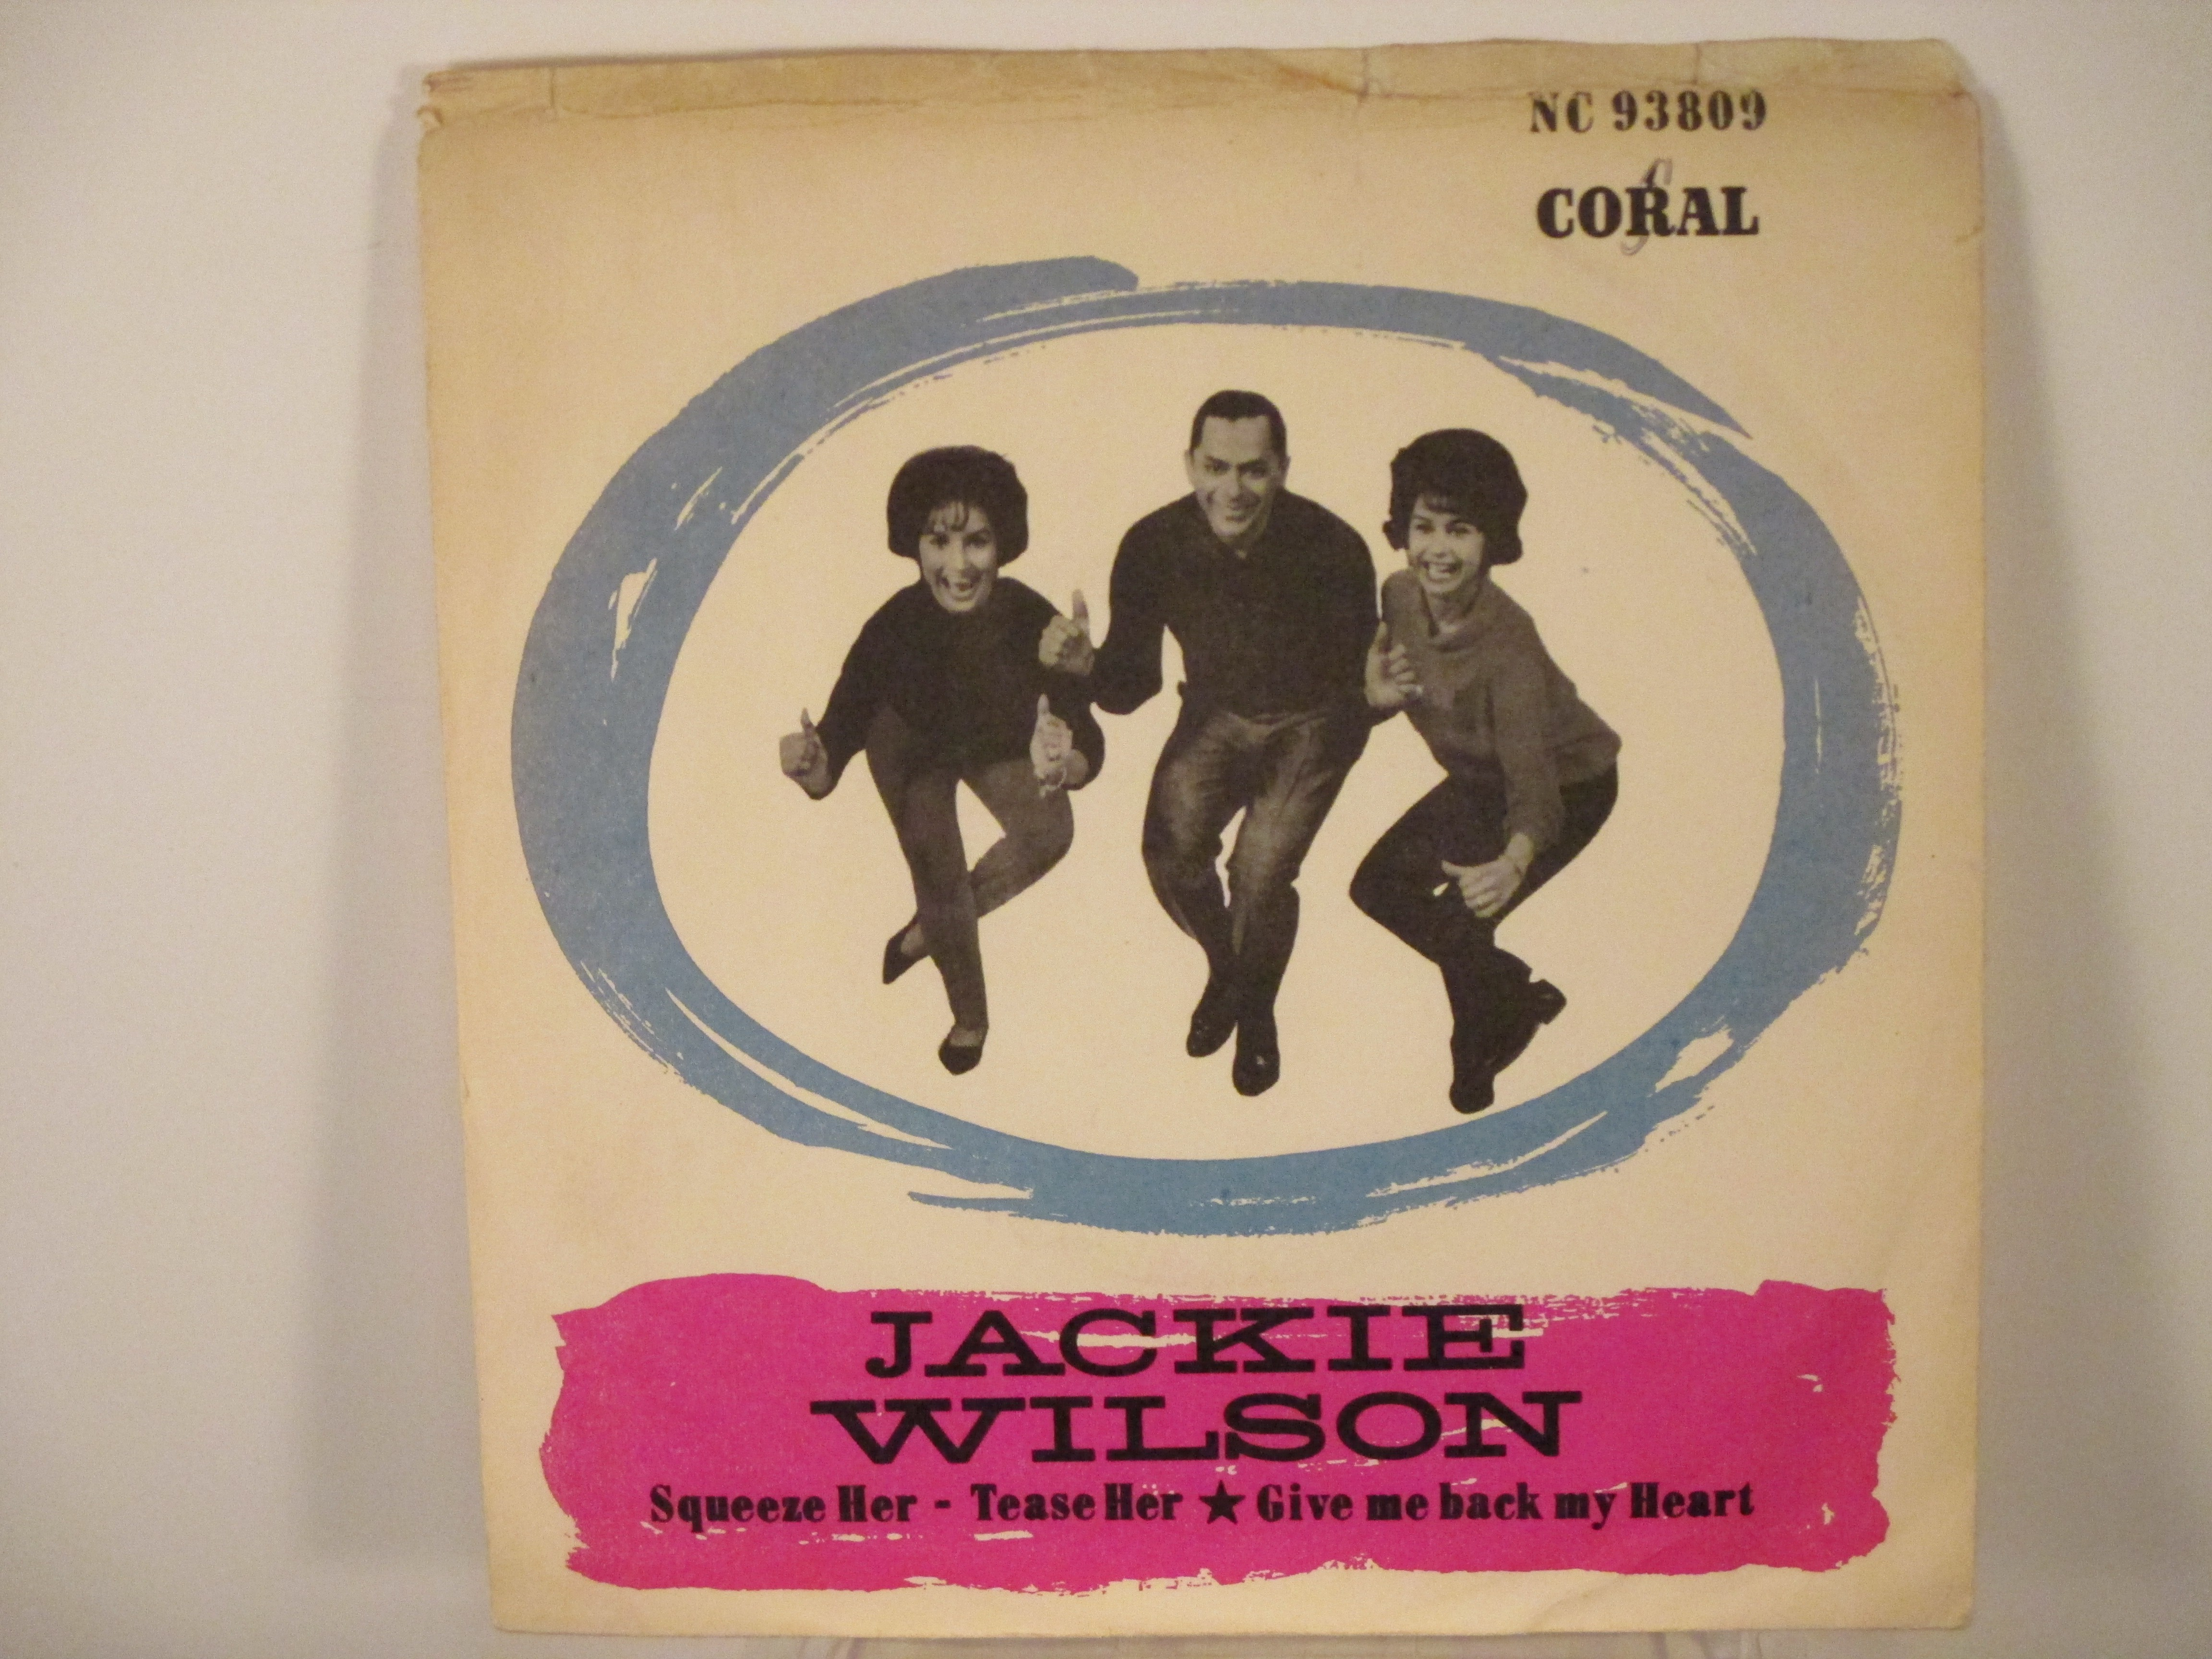 JACKIE WILSON : Squeeze her - tease her / Give me back my heart